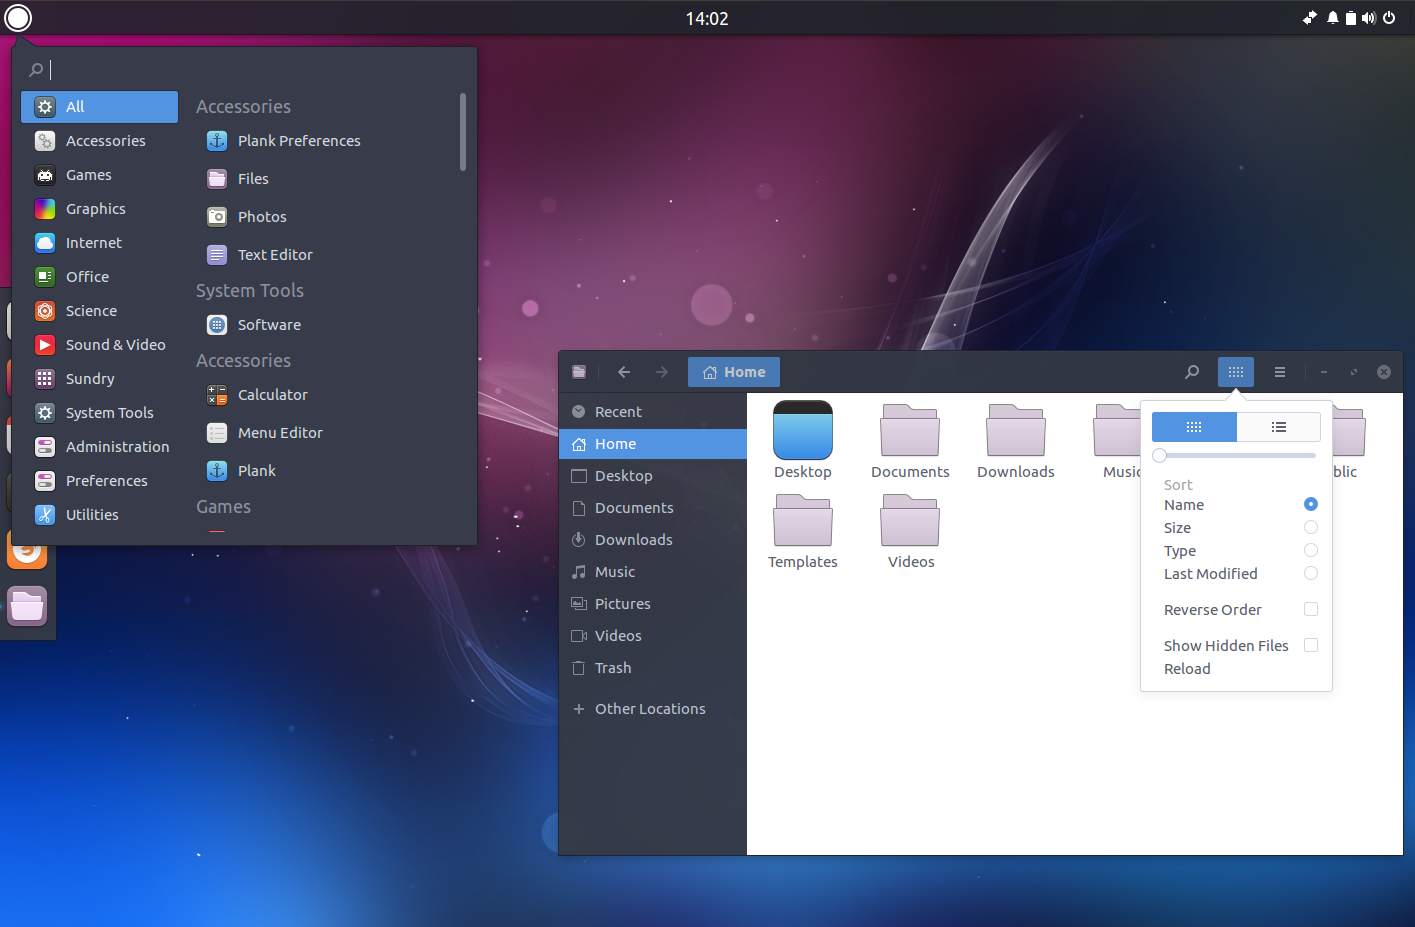 A Quick Look At Budgie Remix 16 04, The Unofficial Budgie Desktop